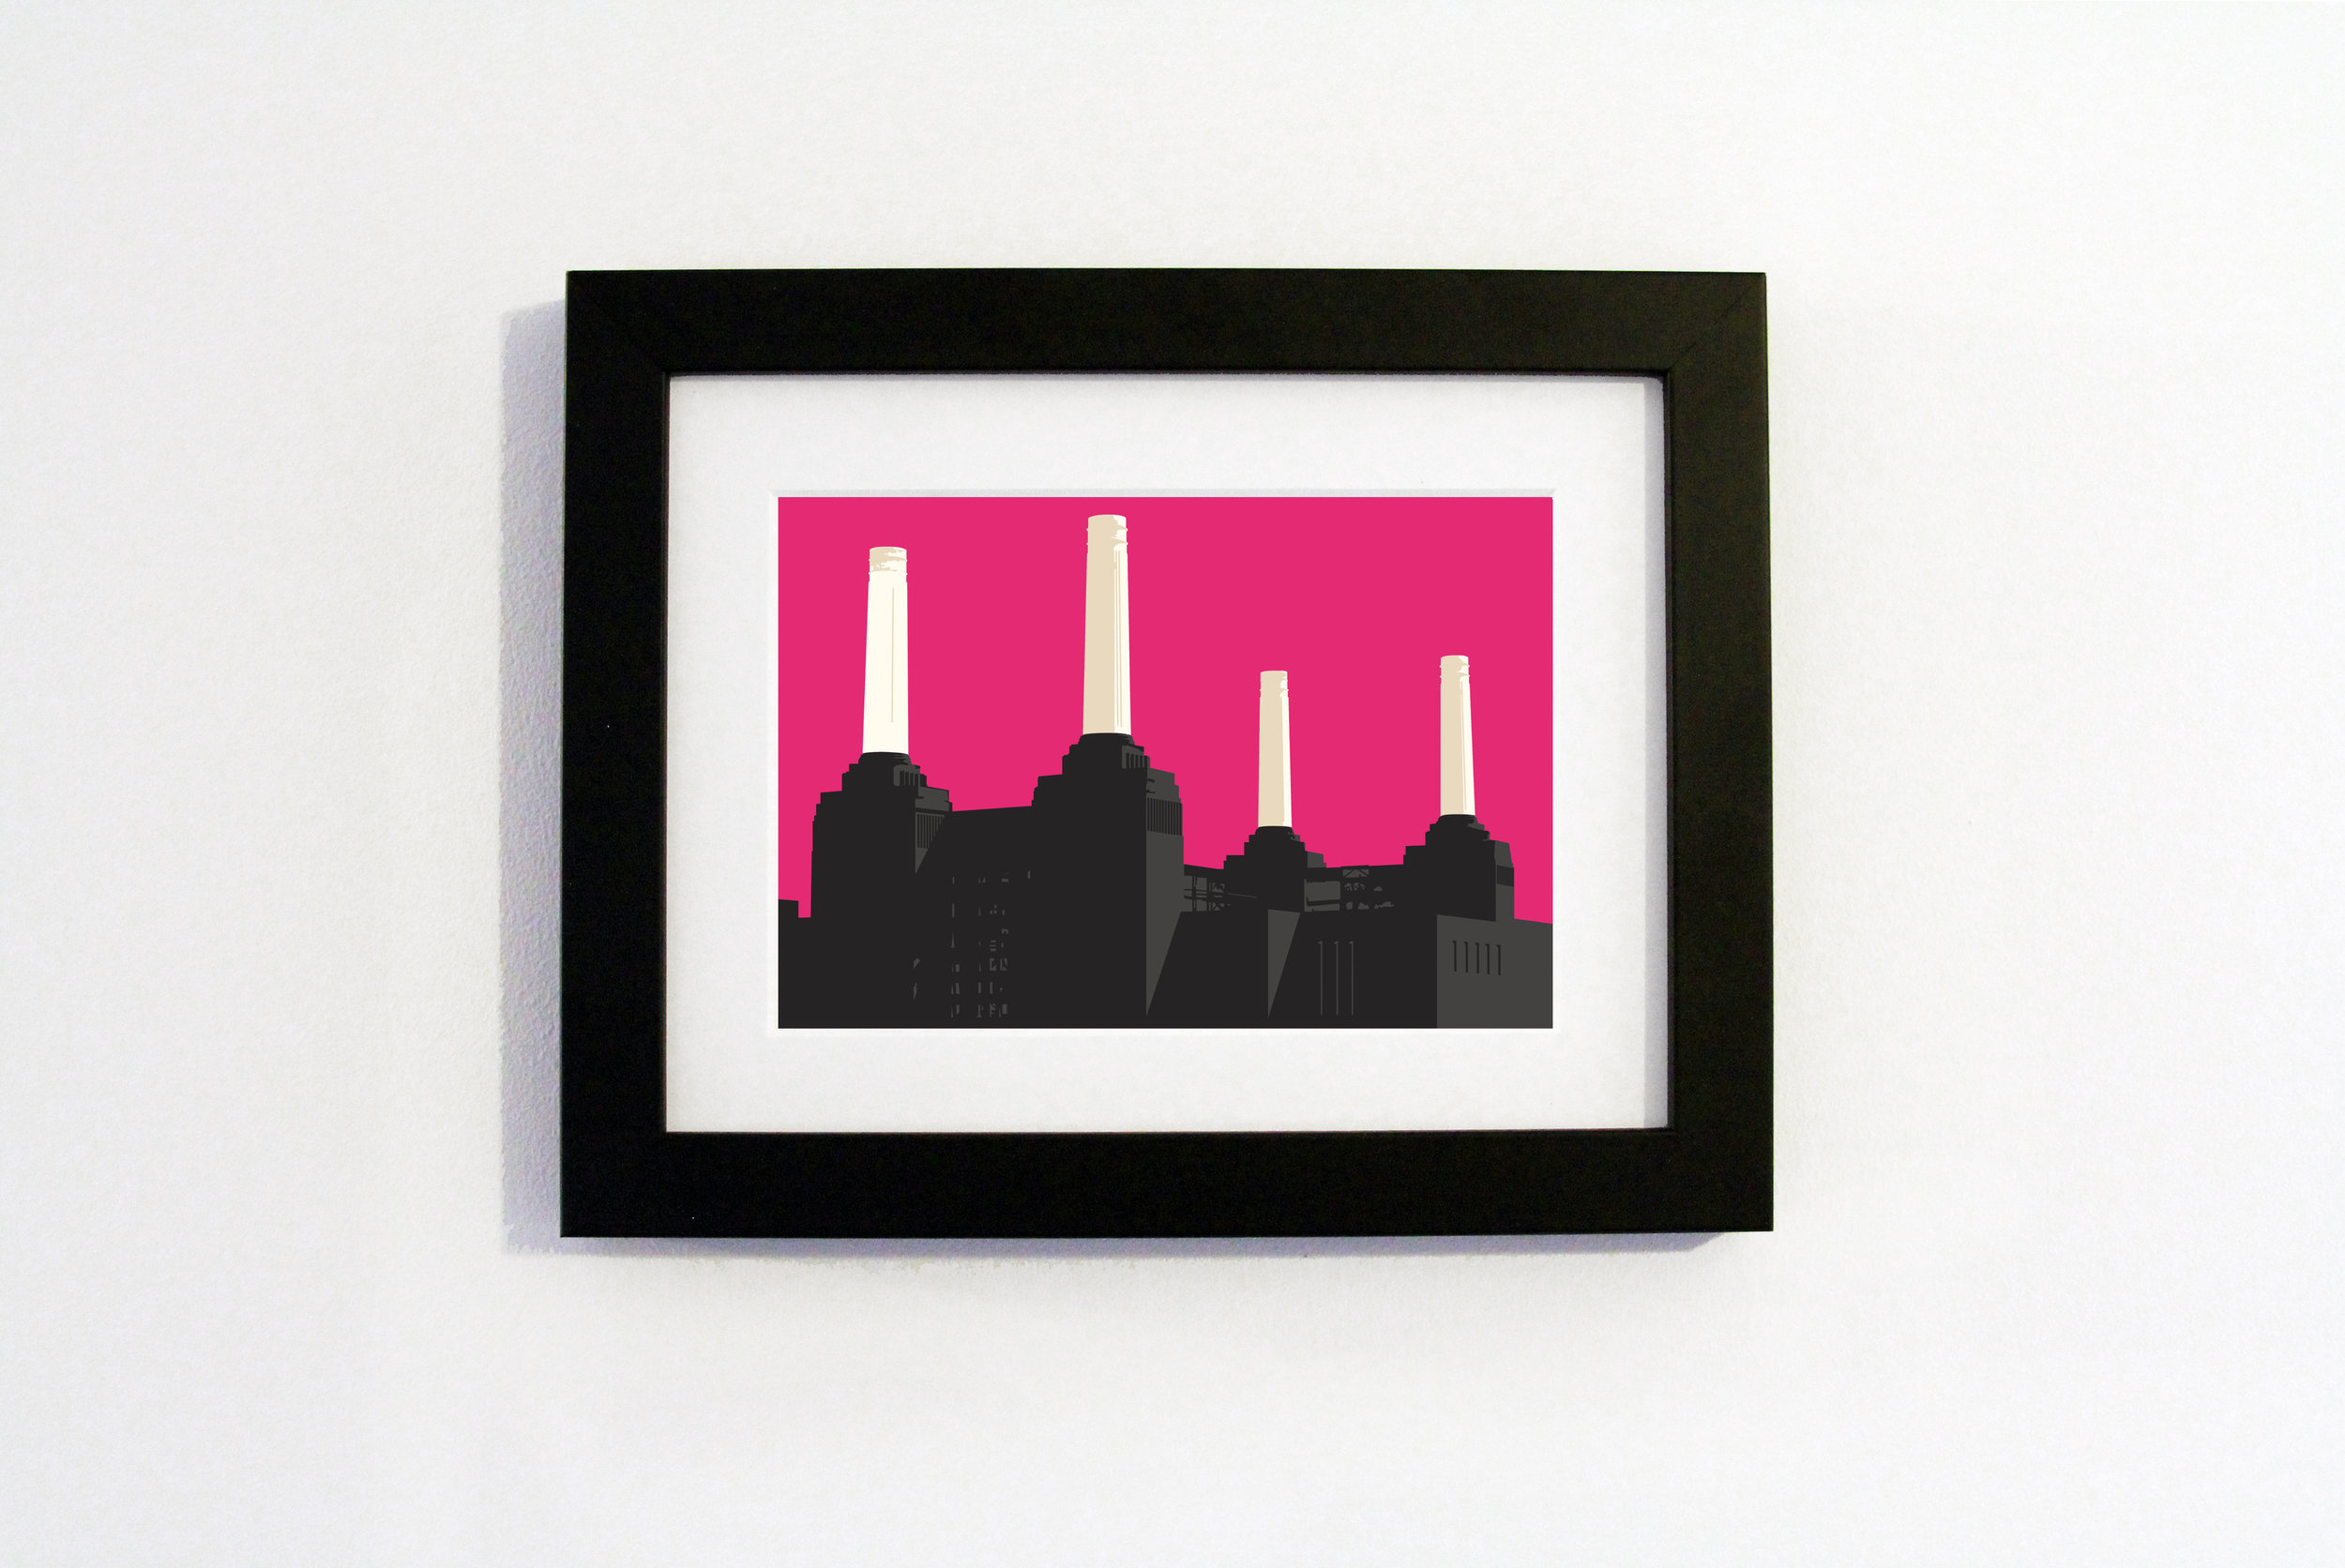 Battersea Pink Black Frame.jpg